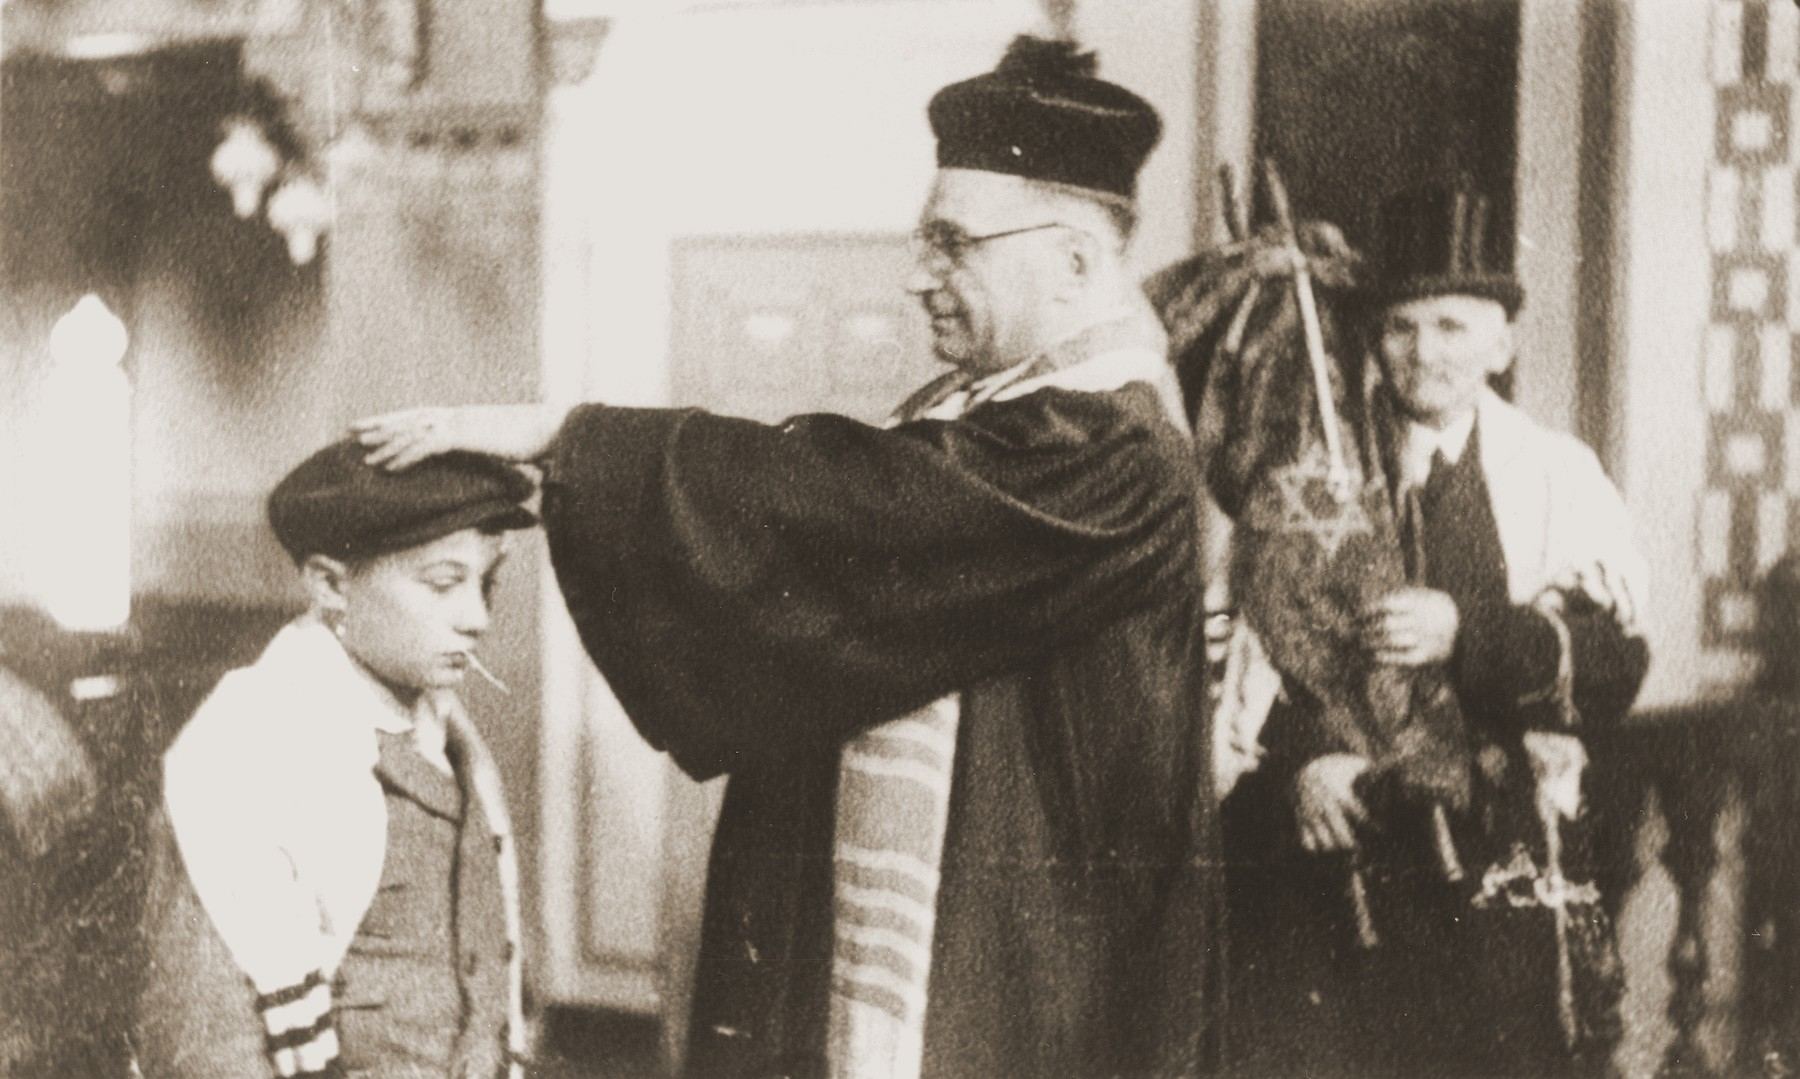 At the liberal Zerrennerstrasse synagogue in Pforzheim, Cantor Hermann Levy blesses Siegbert Levy during his bar mitzvah, while Siegbert's great-uncle (holding the Torah scroll) looks on.